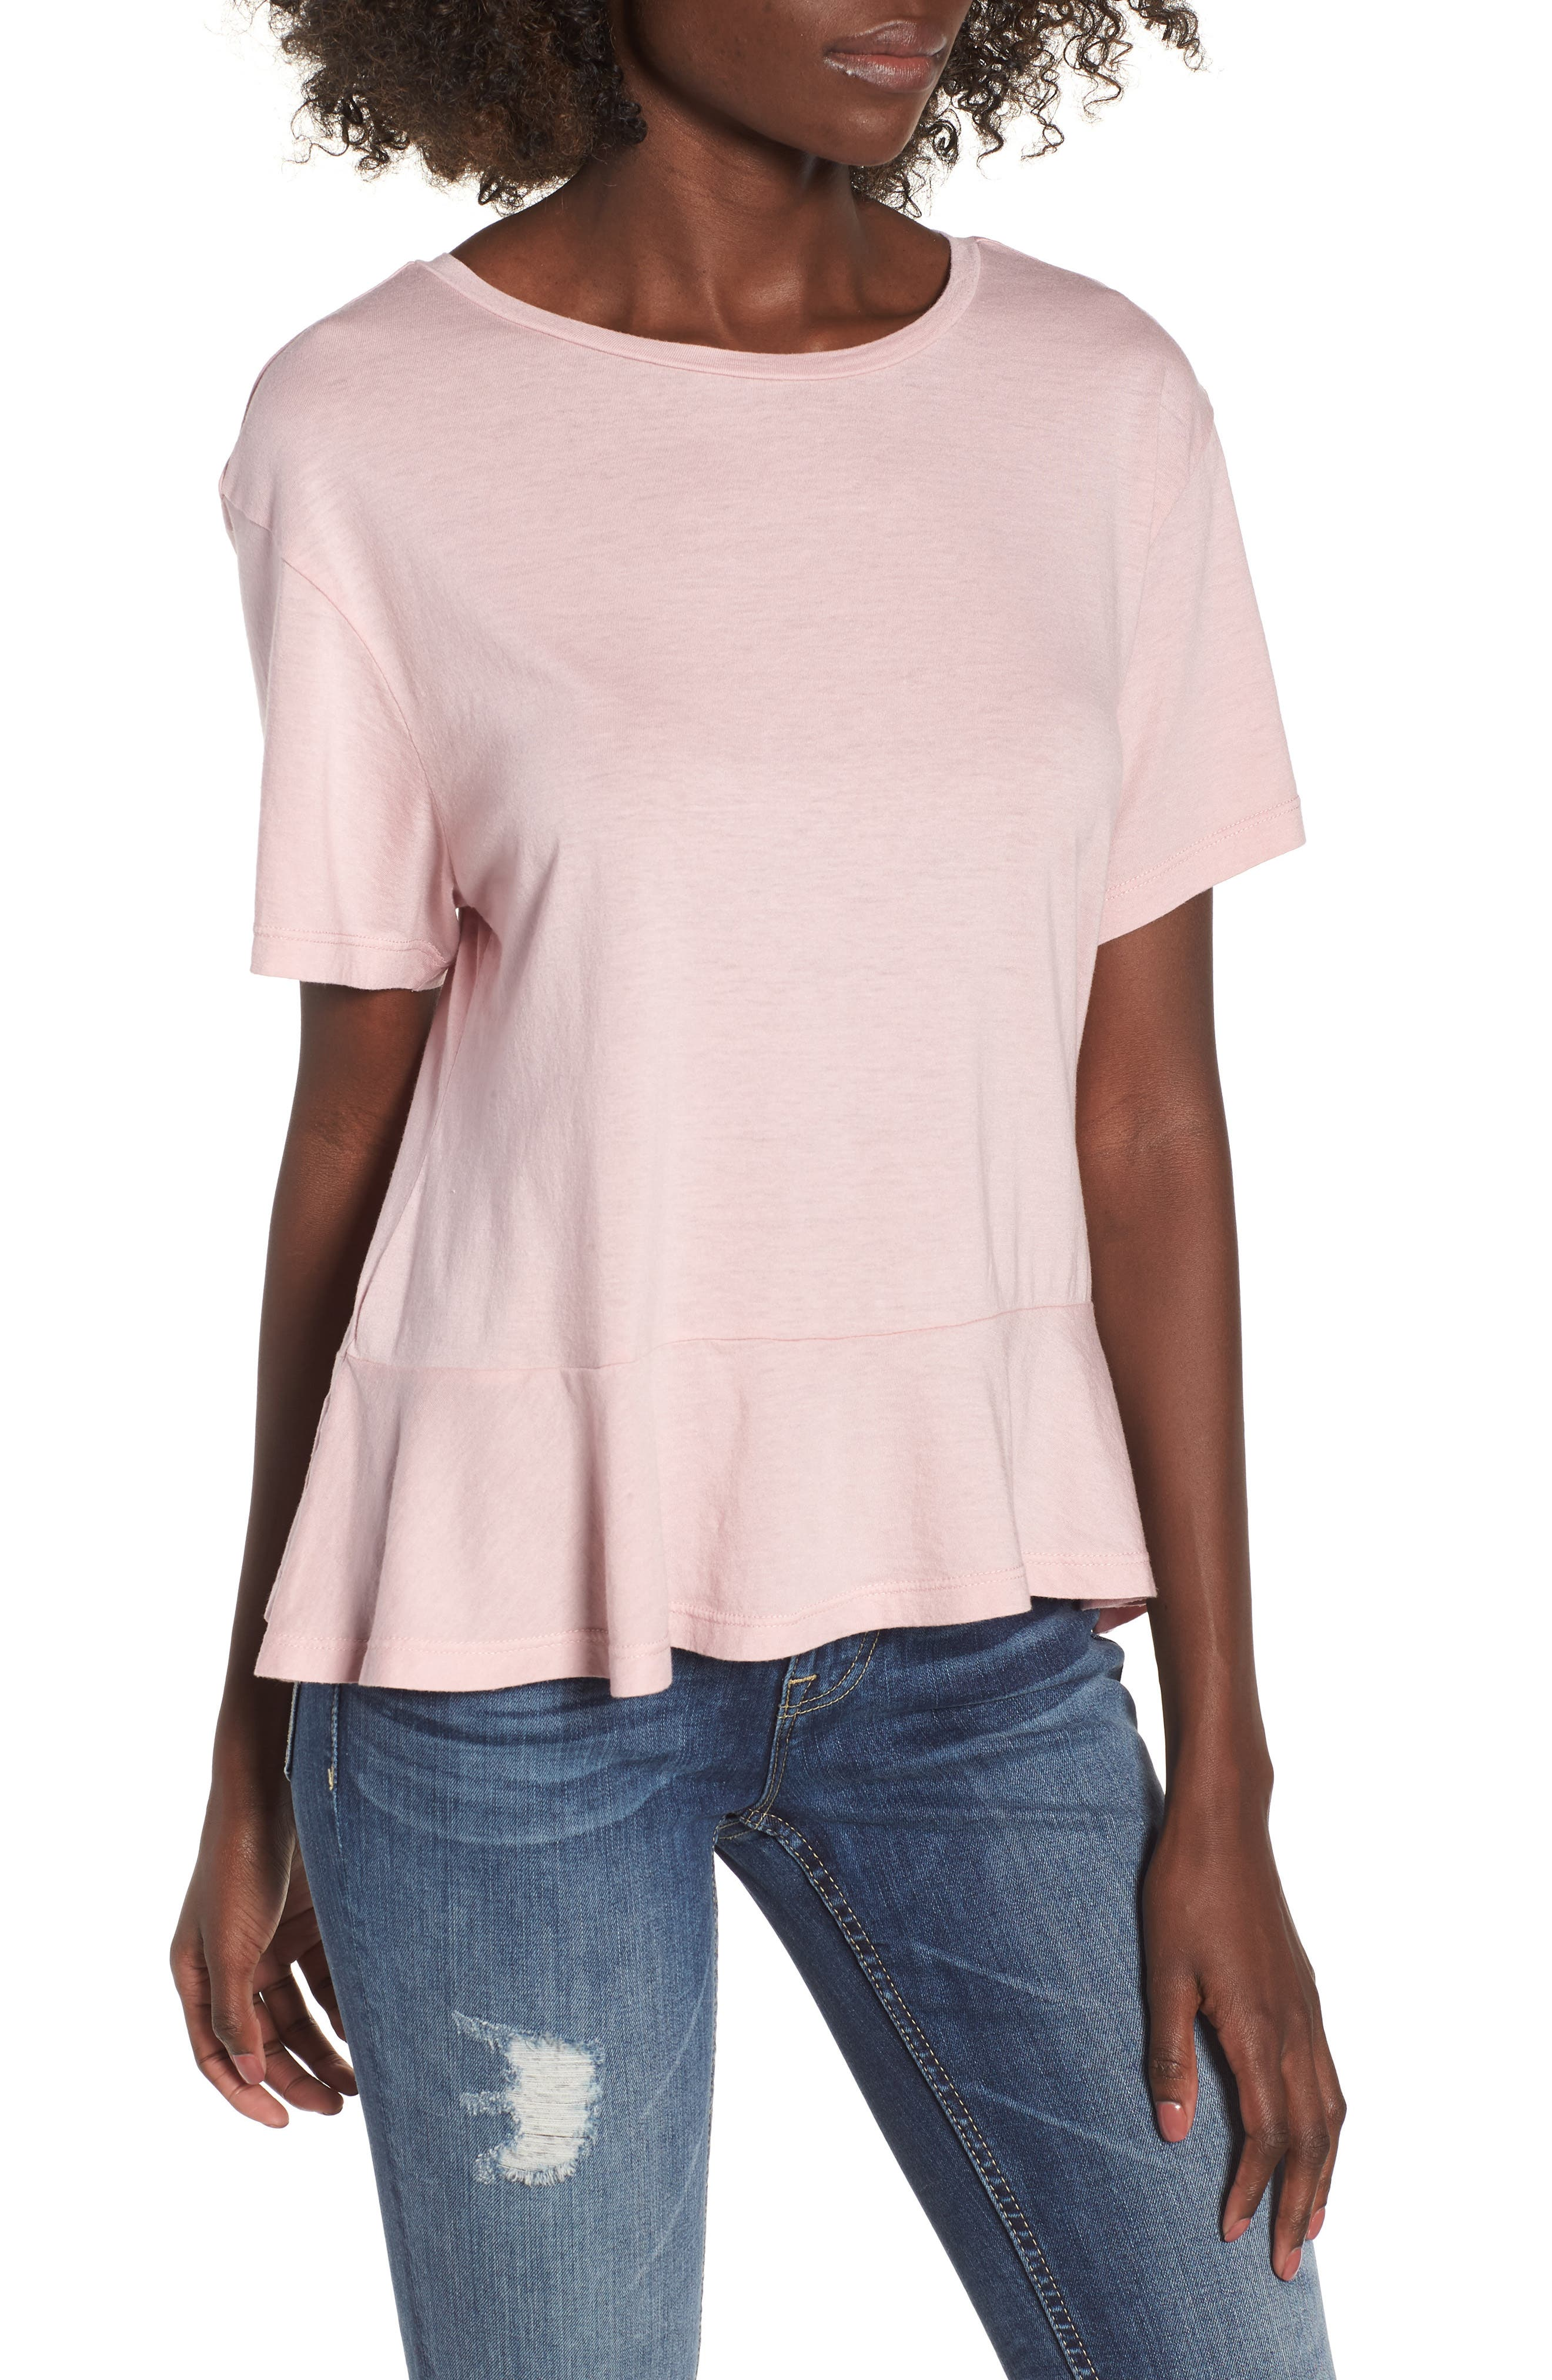 Cheap Price Top Quality Modern Tee - Pink Lily Modern Tee by VIDA VIDA Free Shipping Best Sale Sale Store xUNeFvO0